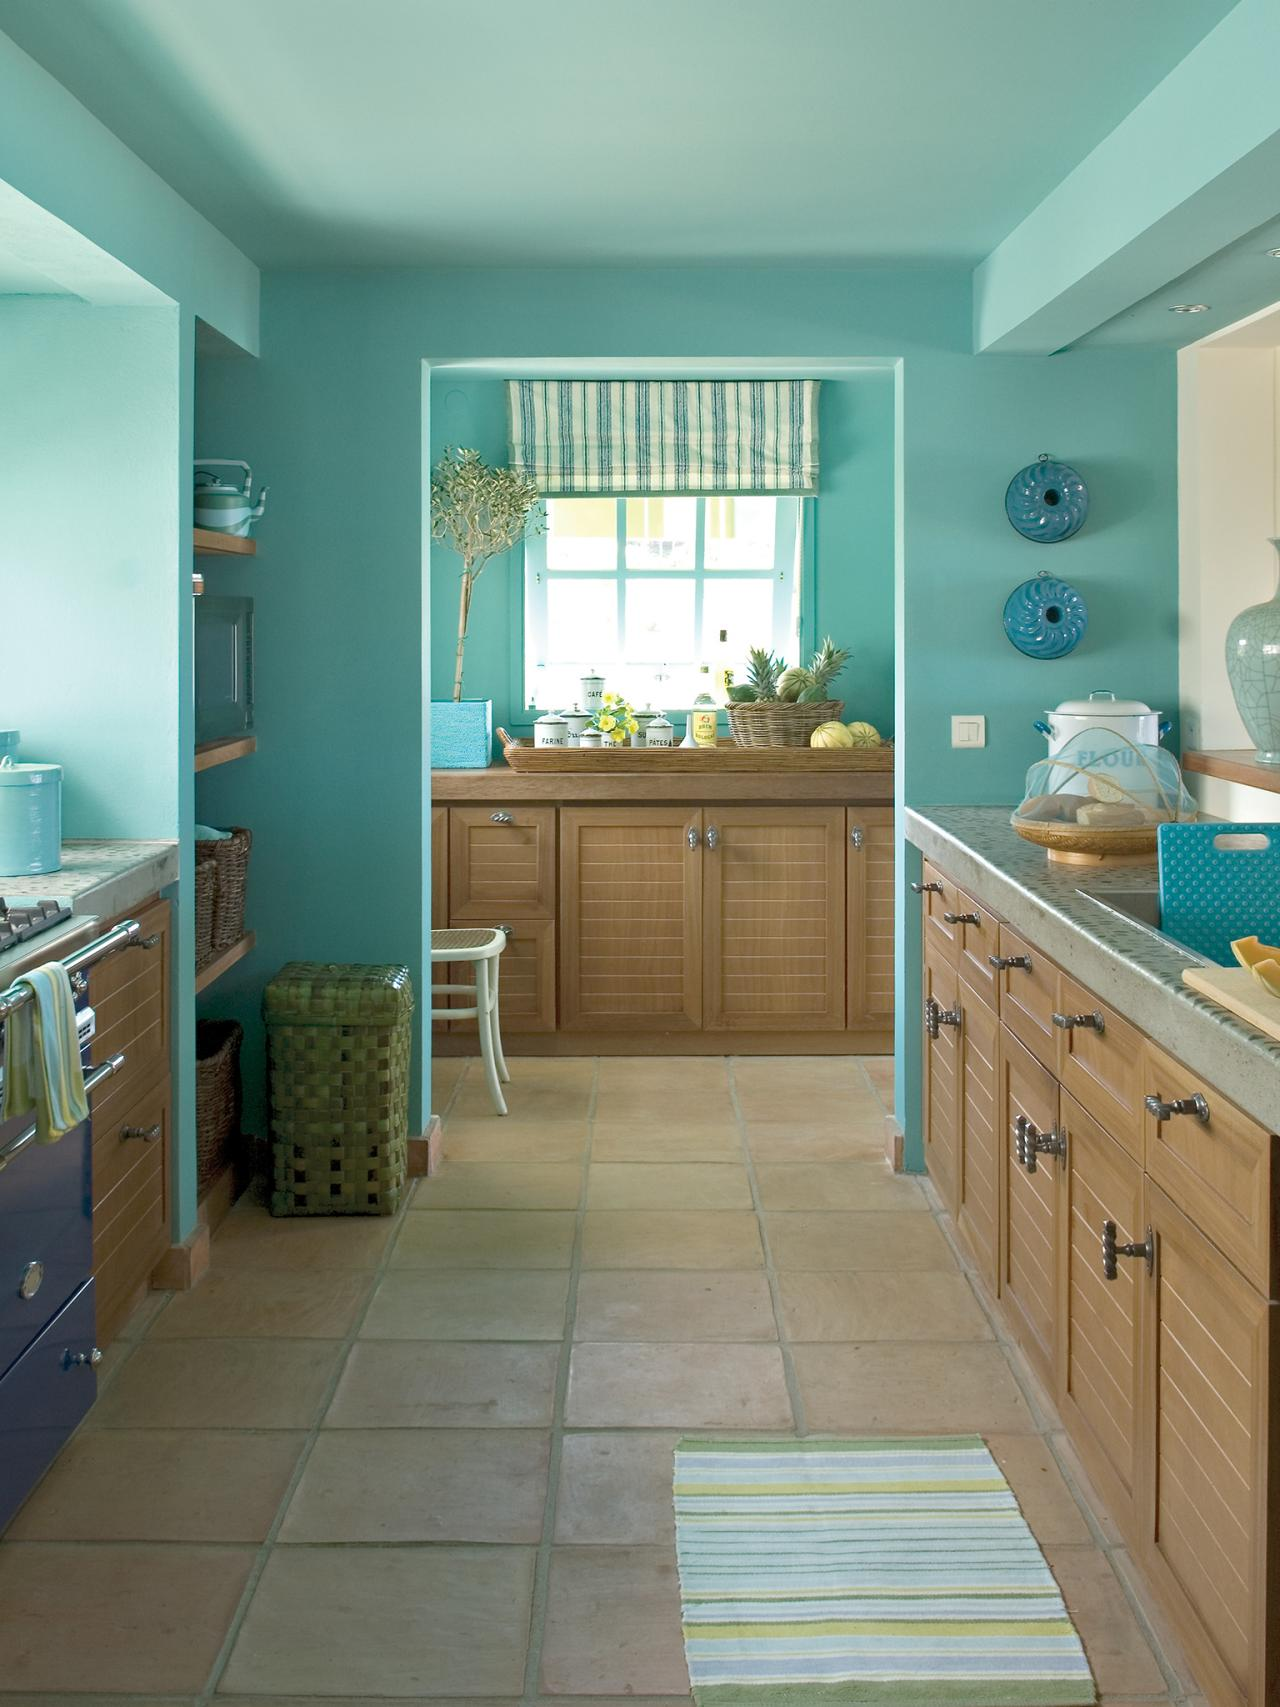 Feng Shui Kitchen Paint Colors: Pictures & Ideas From HGTV